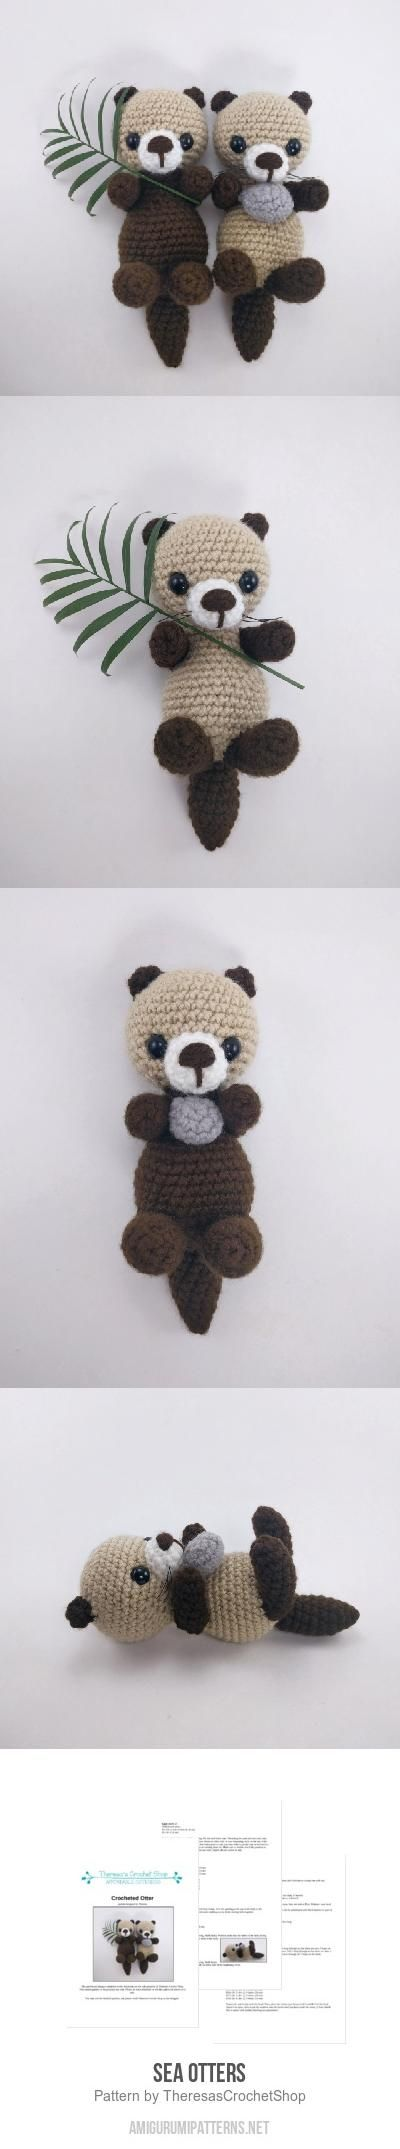 Sea Otters Amigurumi Pattern